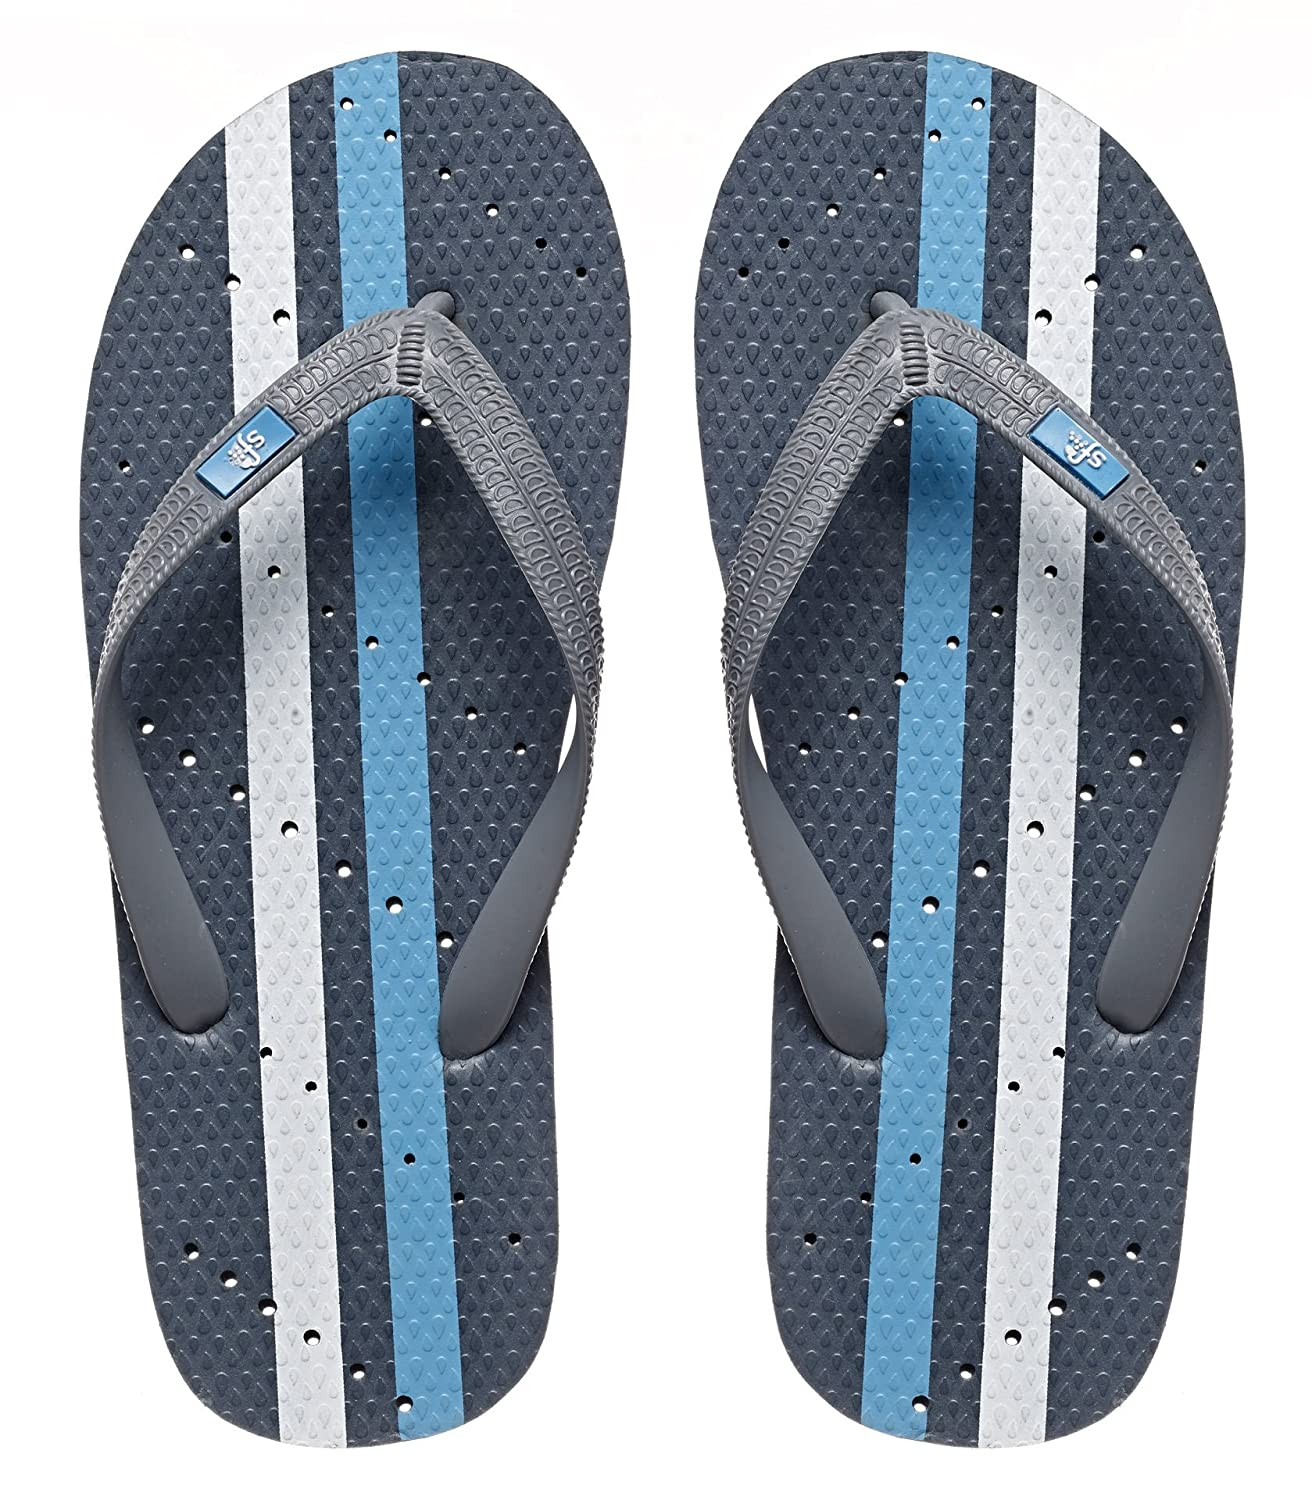 Showaflops Boys' Antimicrobial Shower & Water Sandals for Pool, Beach, Camp and Gym - Racing Stripes Group